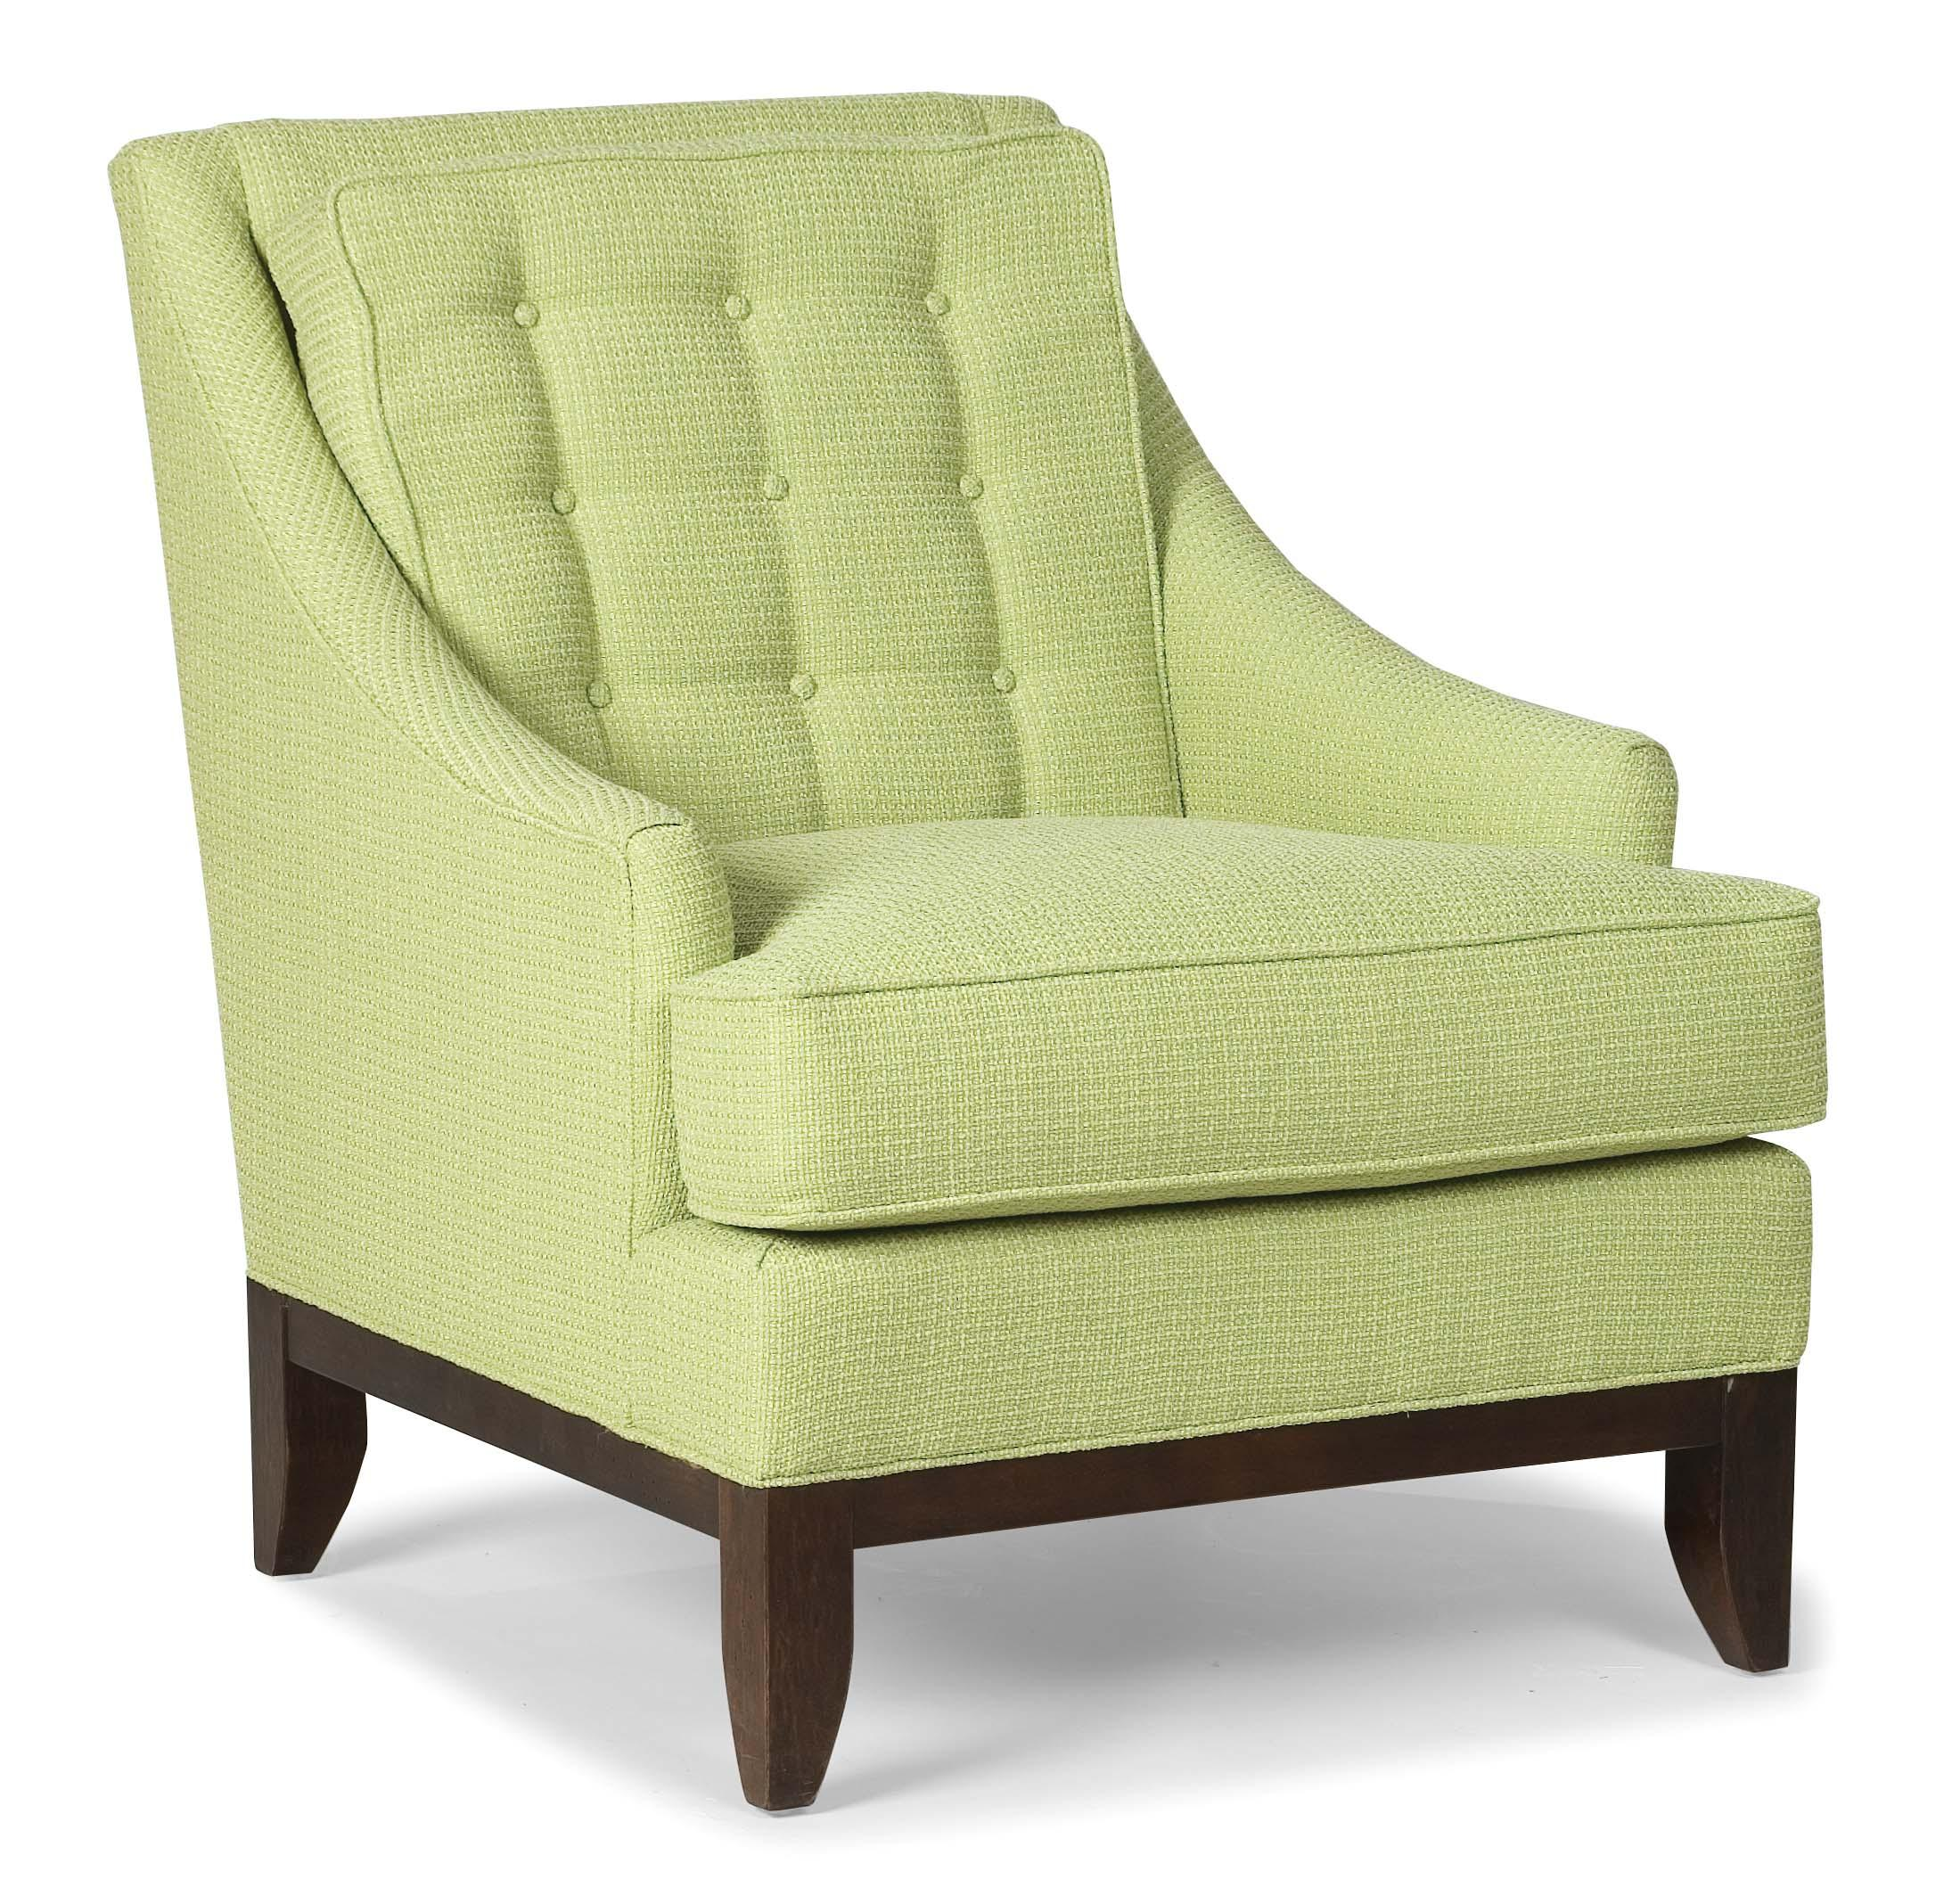 Fairfield Chairs Upholstered Accent Chair with Button